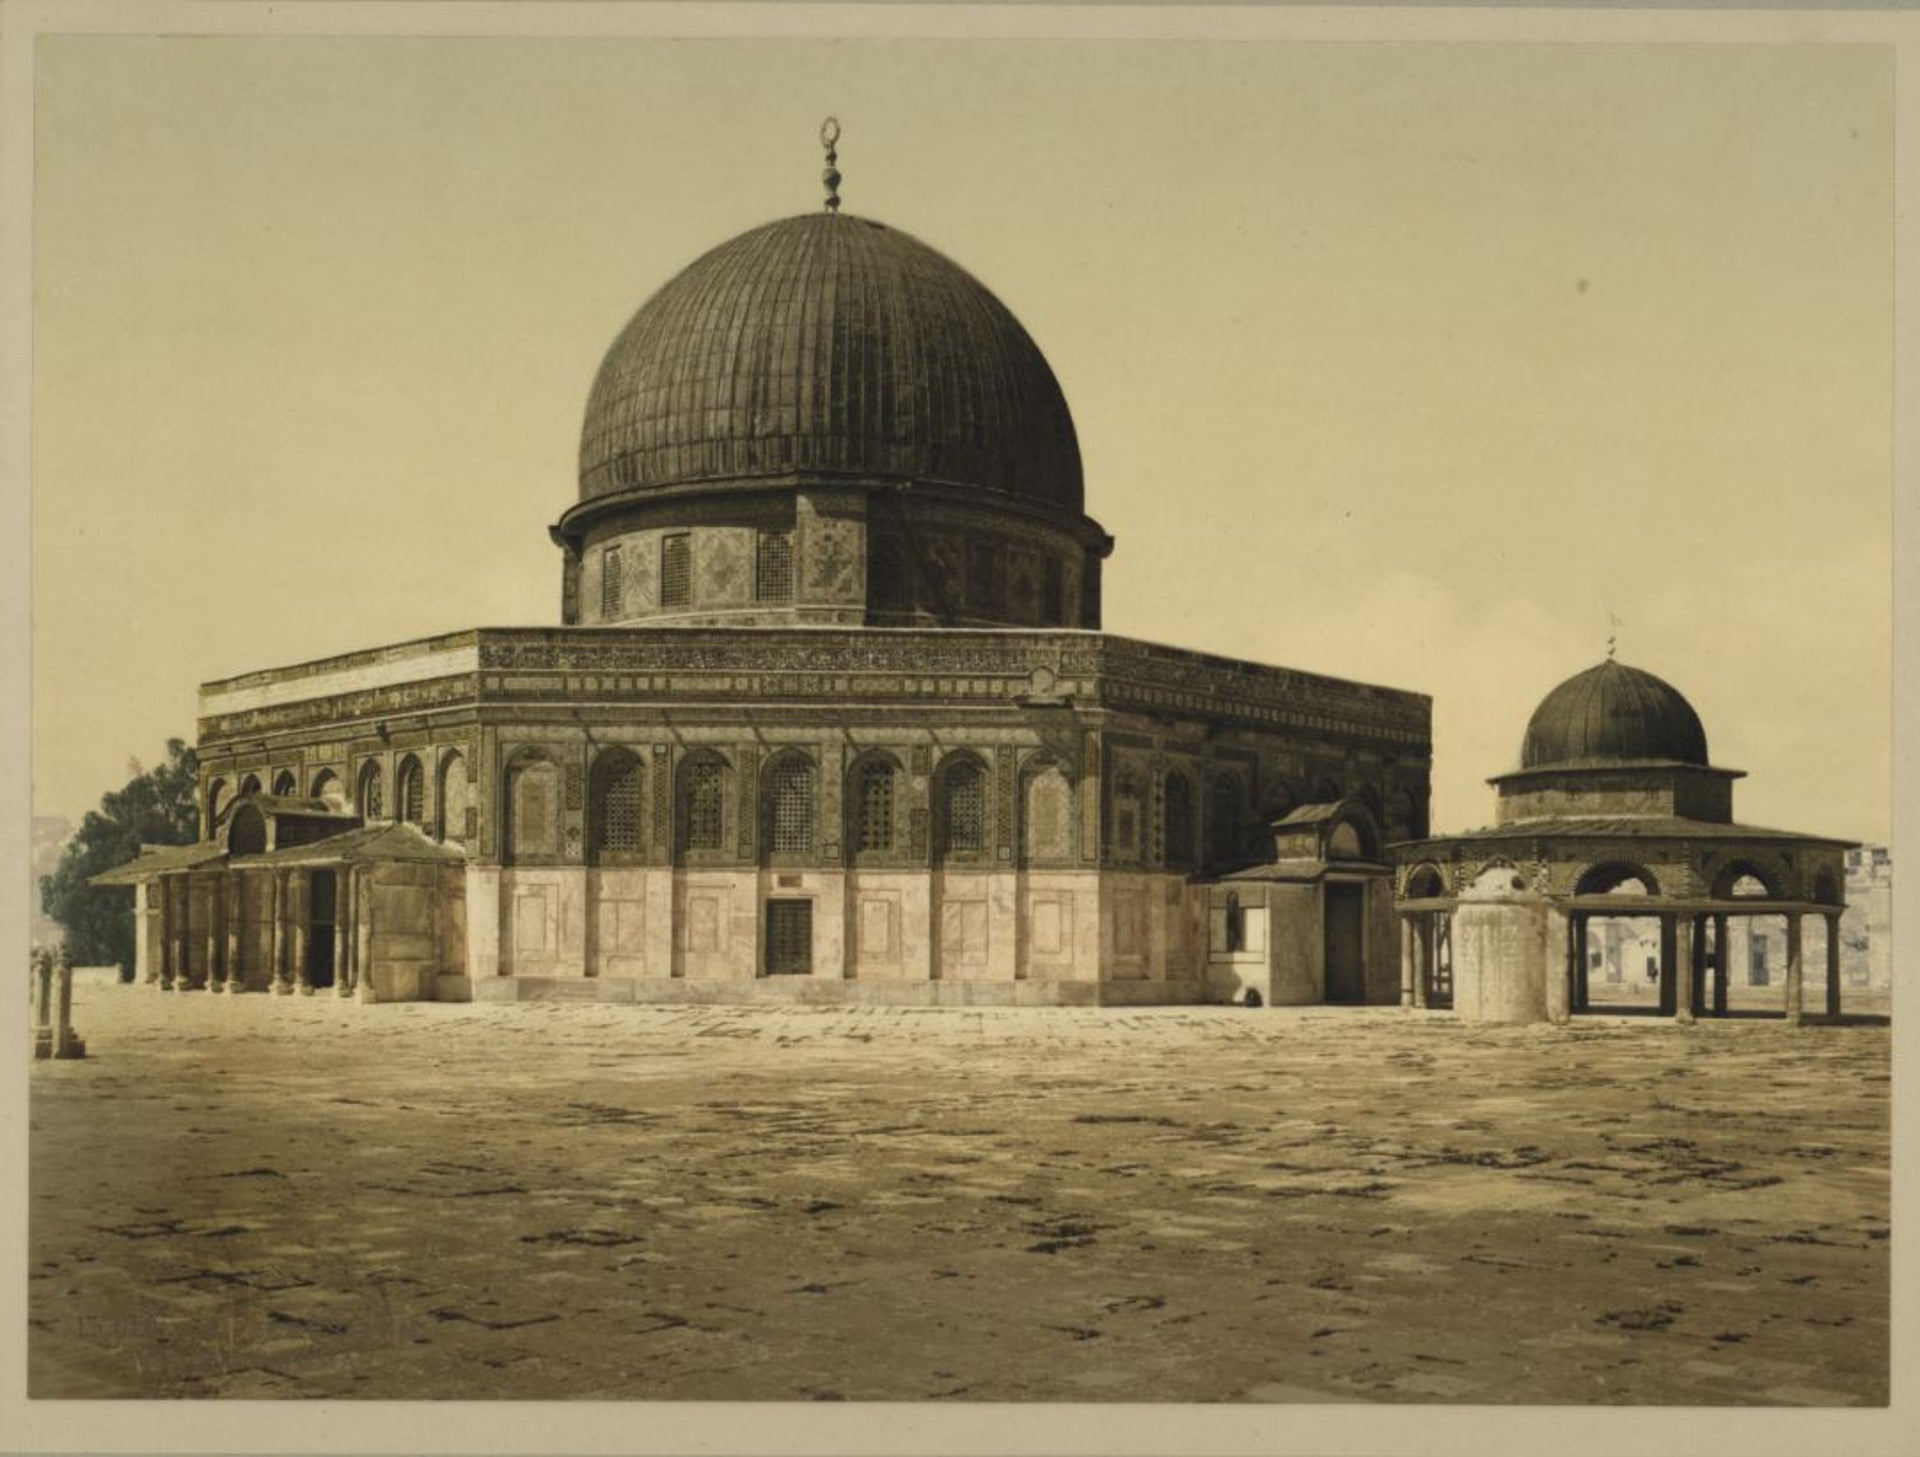 The Dome of the Rock (from the second album).